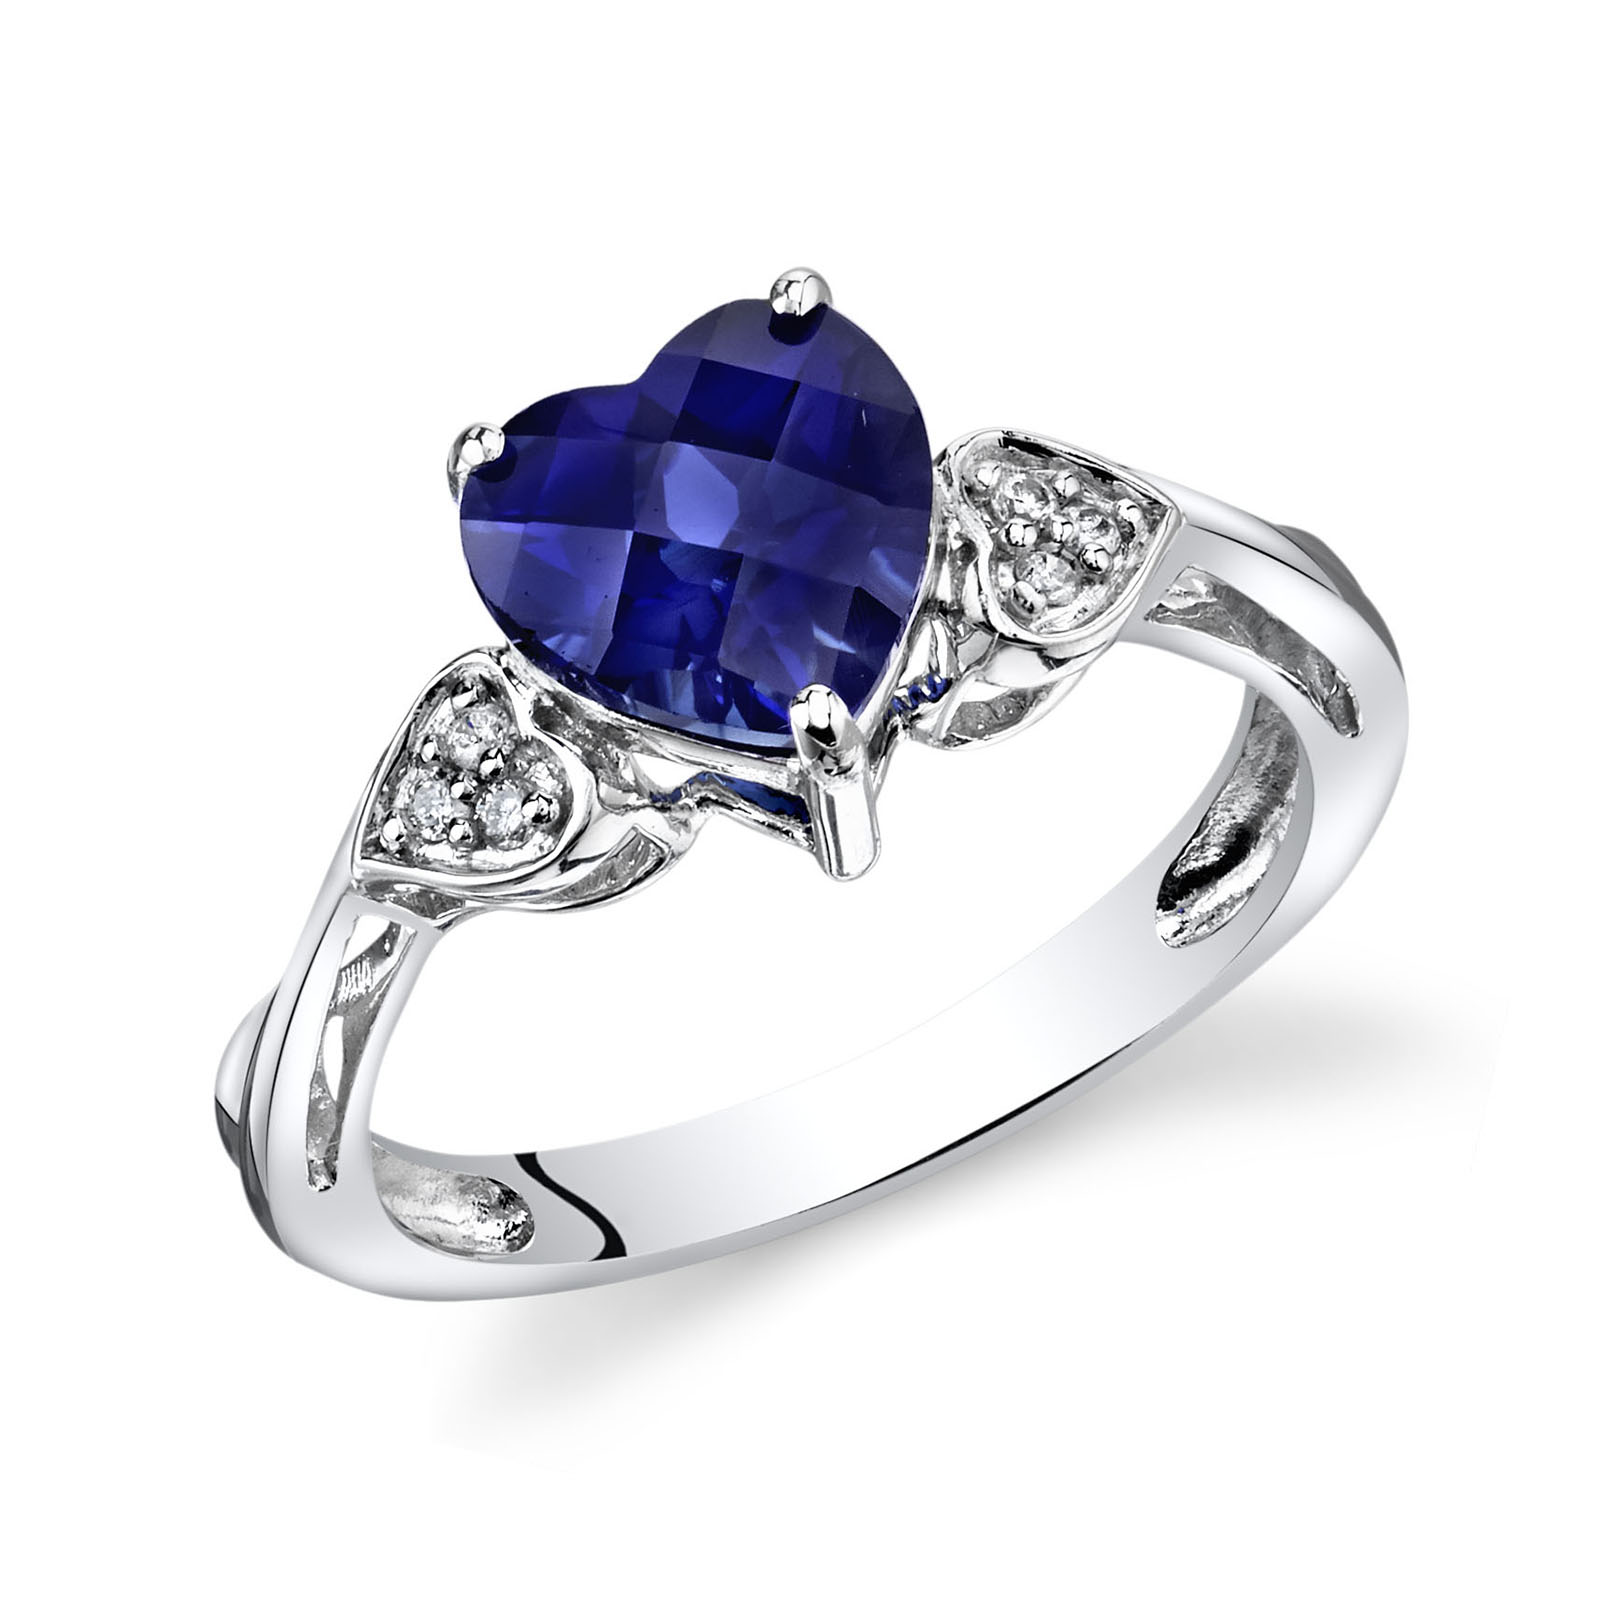 Heart Shaped Sapphire & Diamond Classic Style Ring in 9ct White Gold